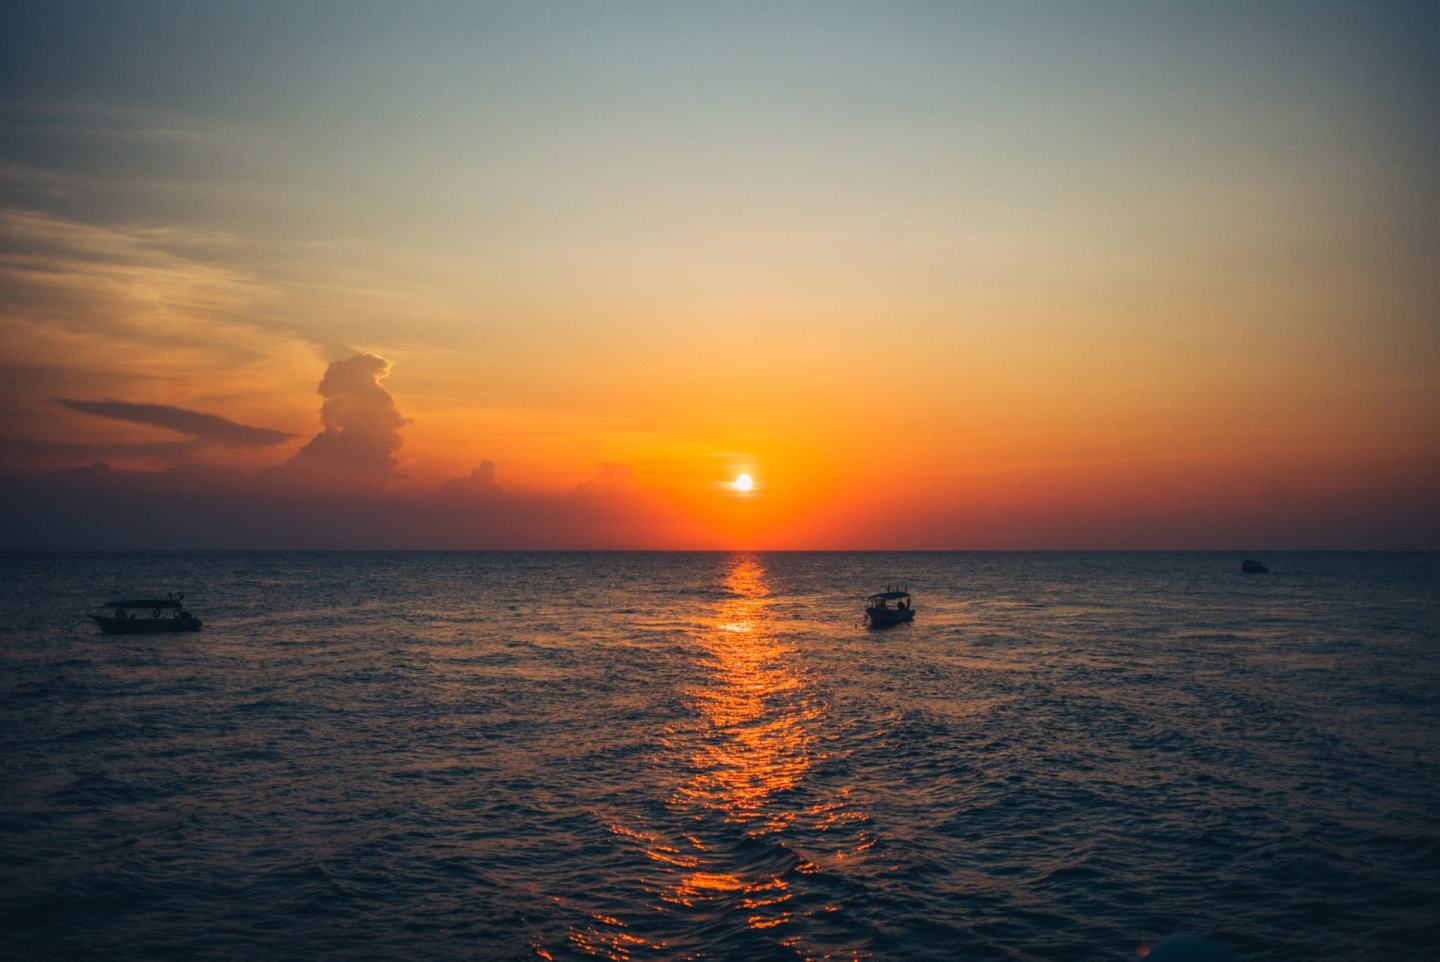 sunset at Tioman island